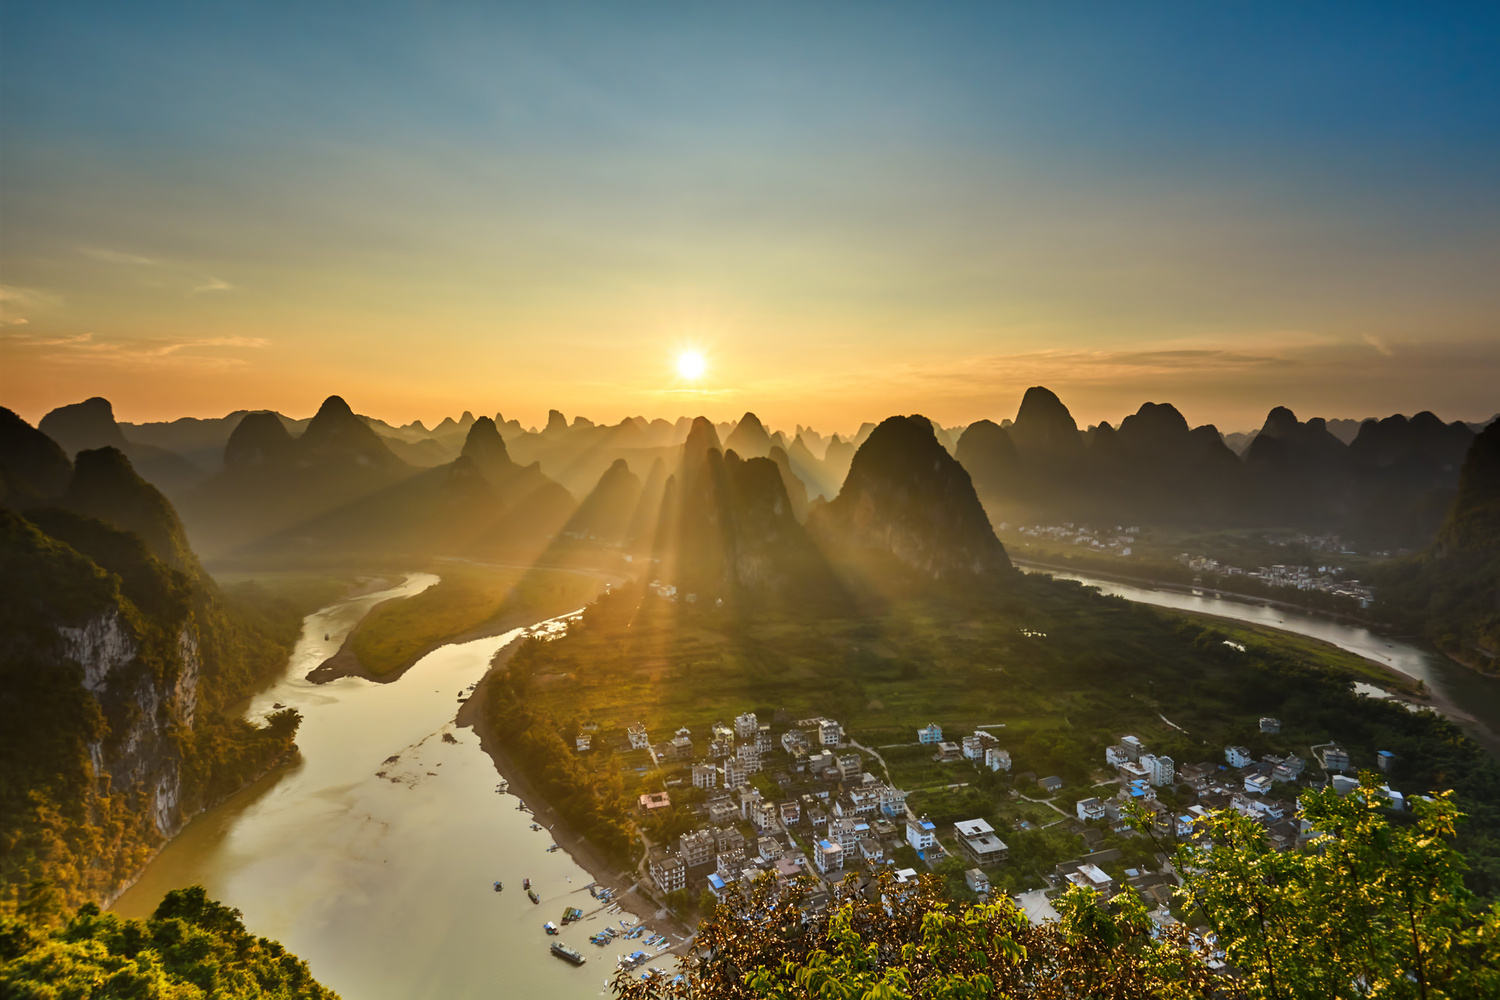 Sunset over Li River by Yannick K.